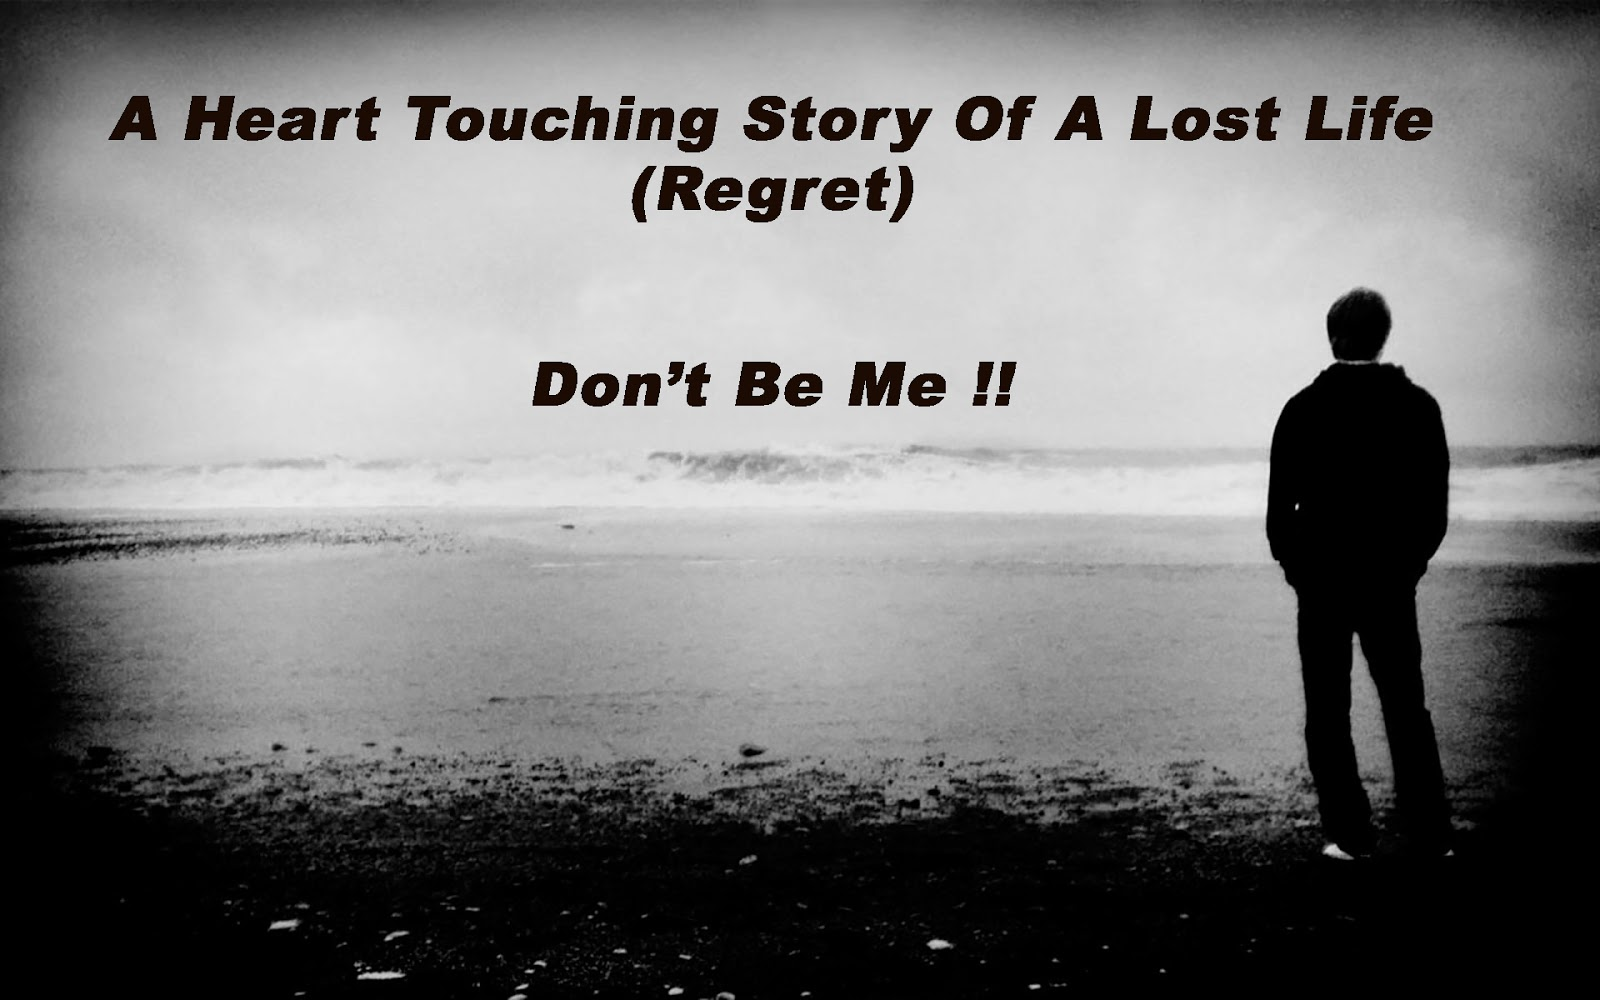 A Heart Touching Story Of A Lost Life (Regret) - True